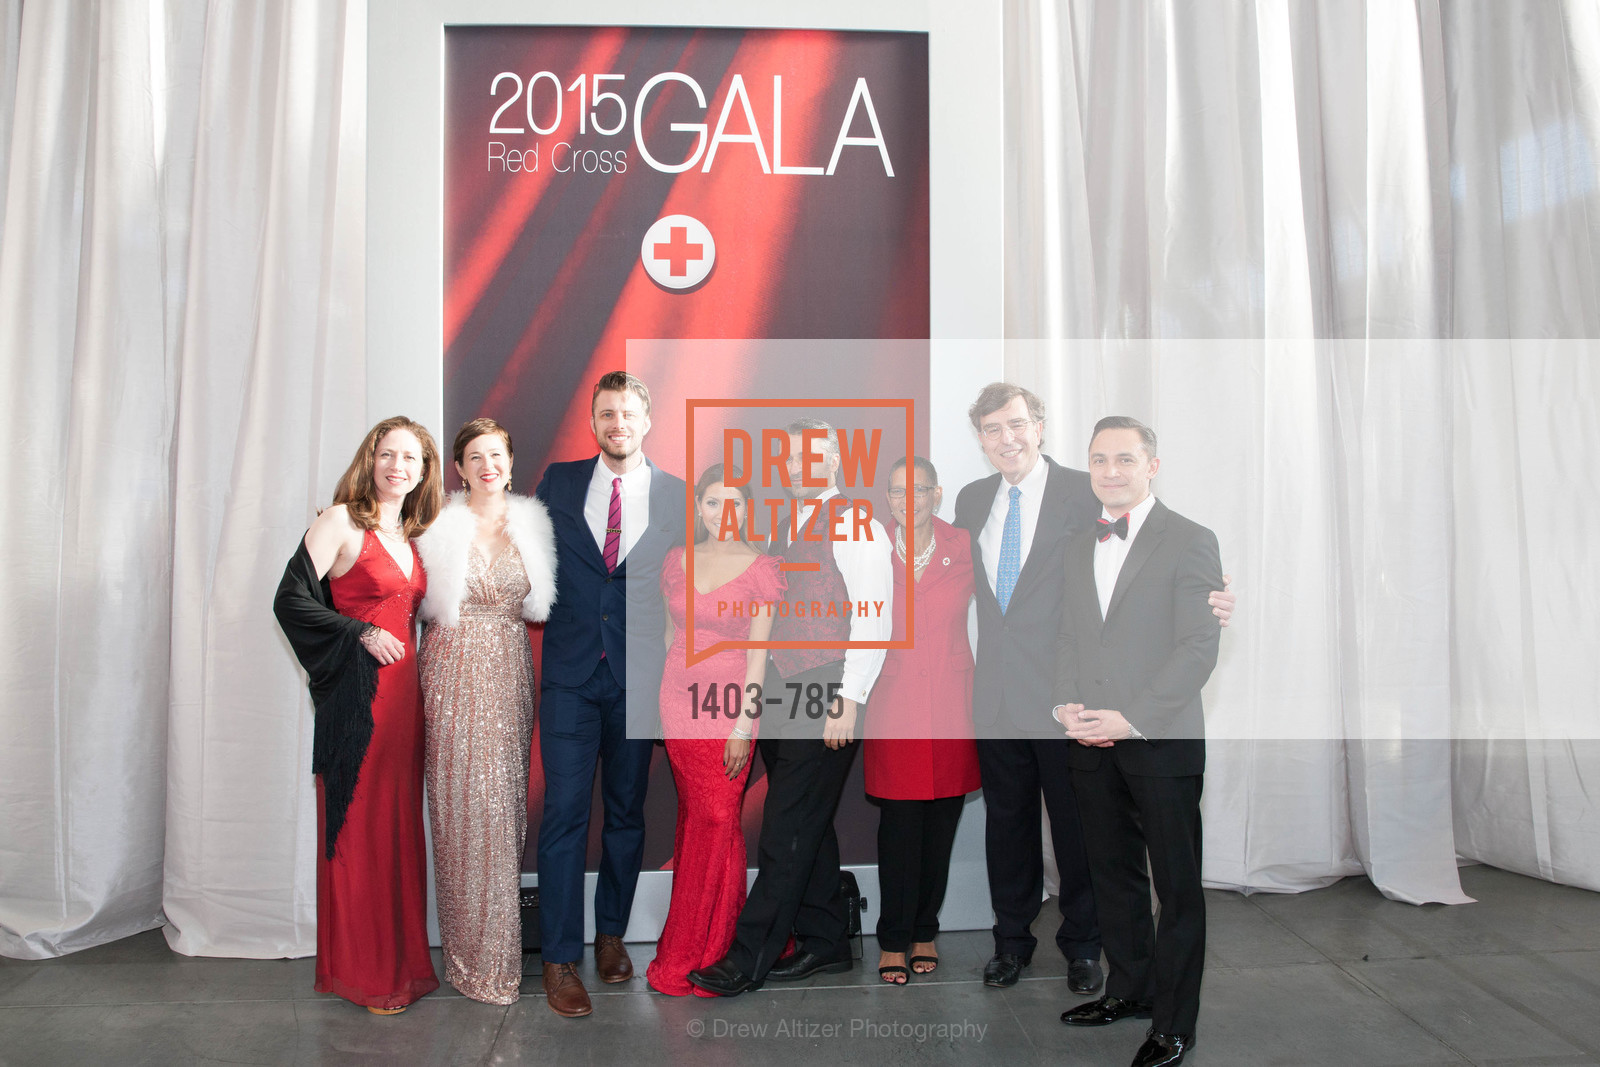 Moira Dowell, Emily White, Neil Freese, Lillian Phan, Hooman Khalili, Donnay Duay, Neal Litvack, Erza Garrett, 2015 RED CROSS Gala, US, April 11th, 2015,Drew Altizer, Drew Altizer Photography, full-service agency, private events, San Francisco photographer, photographer california